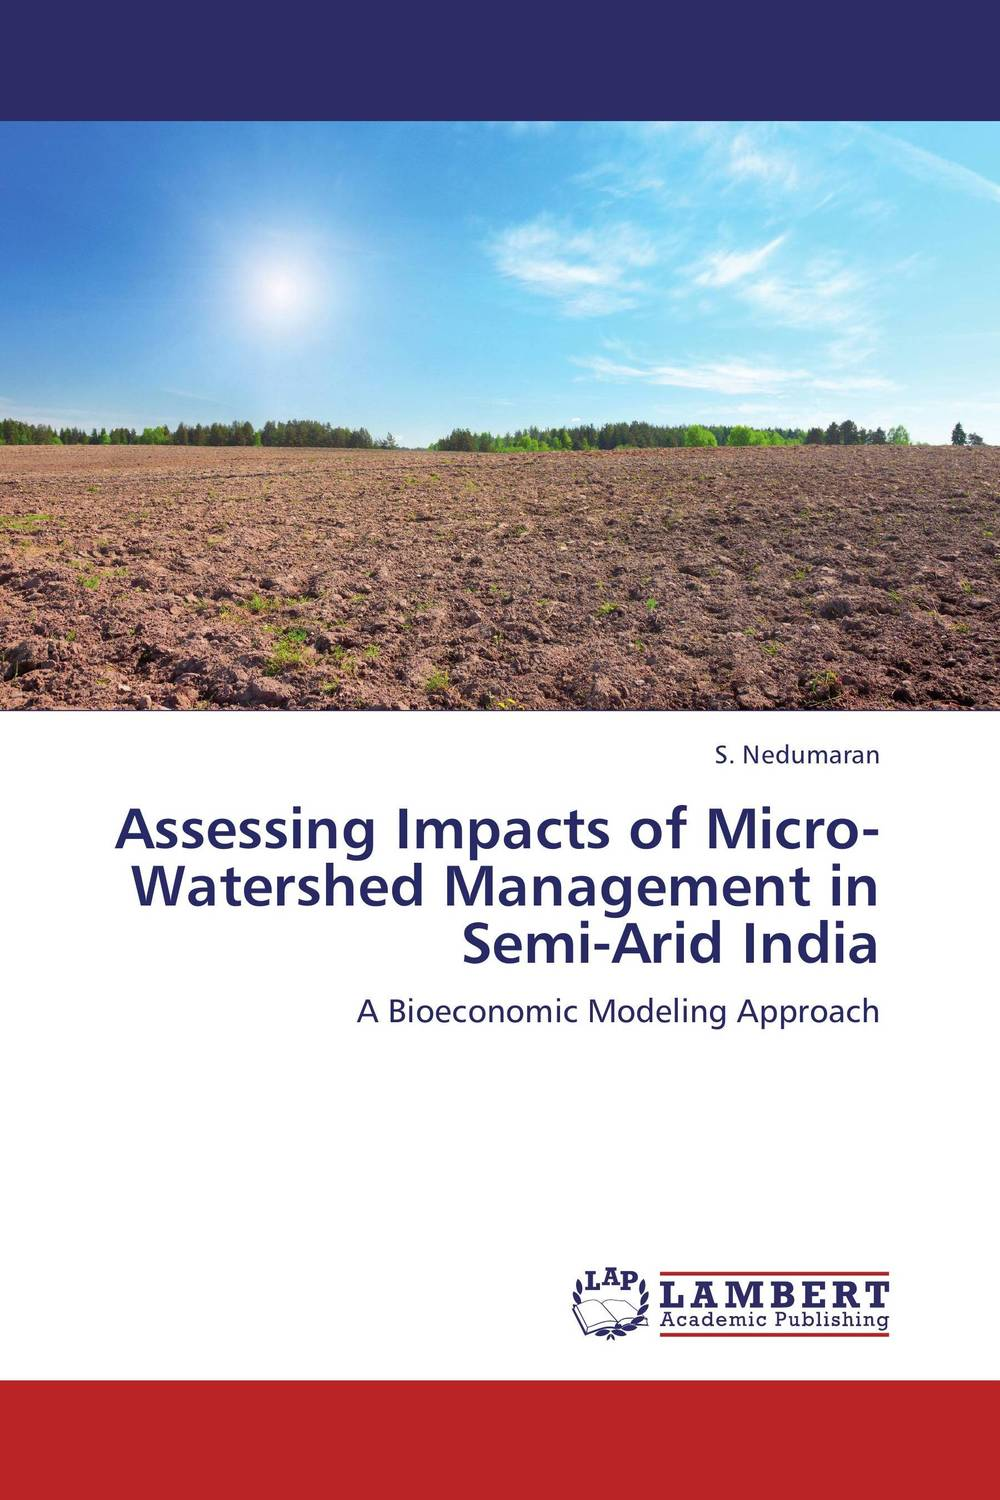 Assessing Impacts of Micro-Watershed Management in Semi-Arid India natural resource policy and law for sustainable development